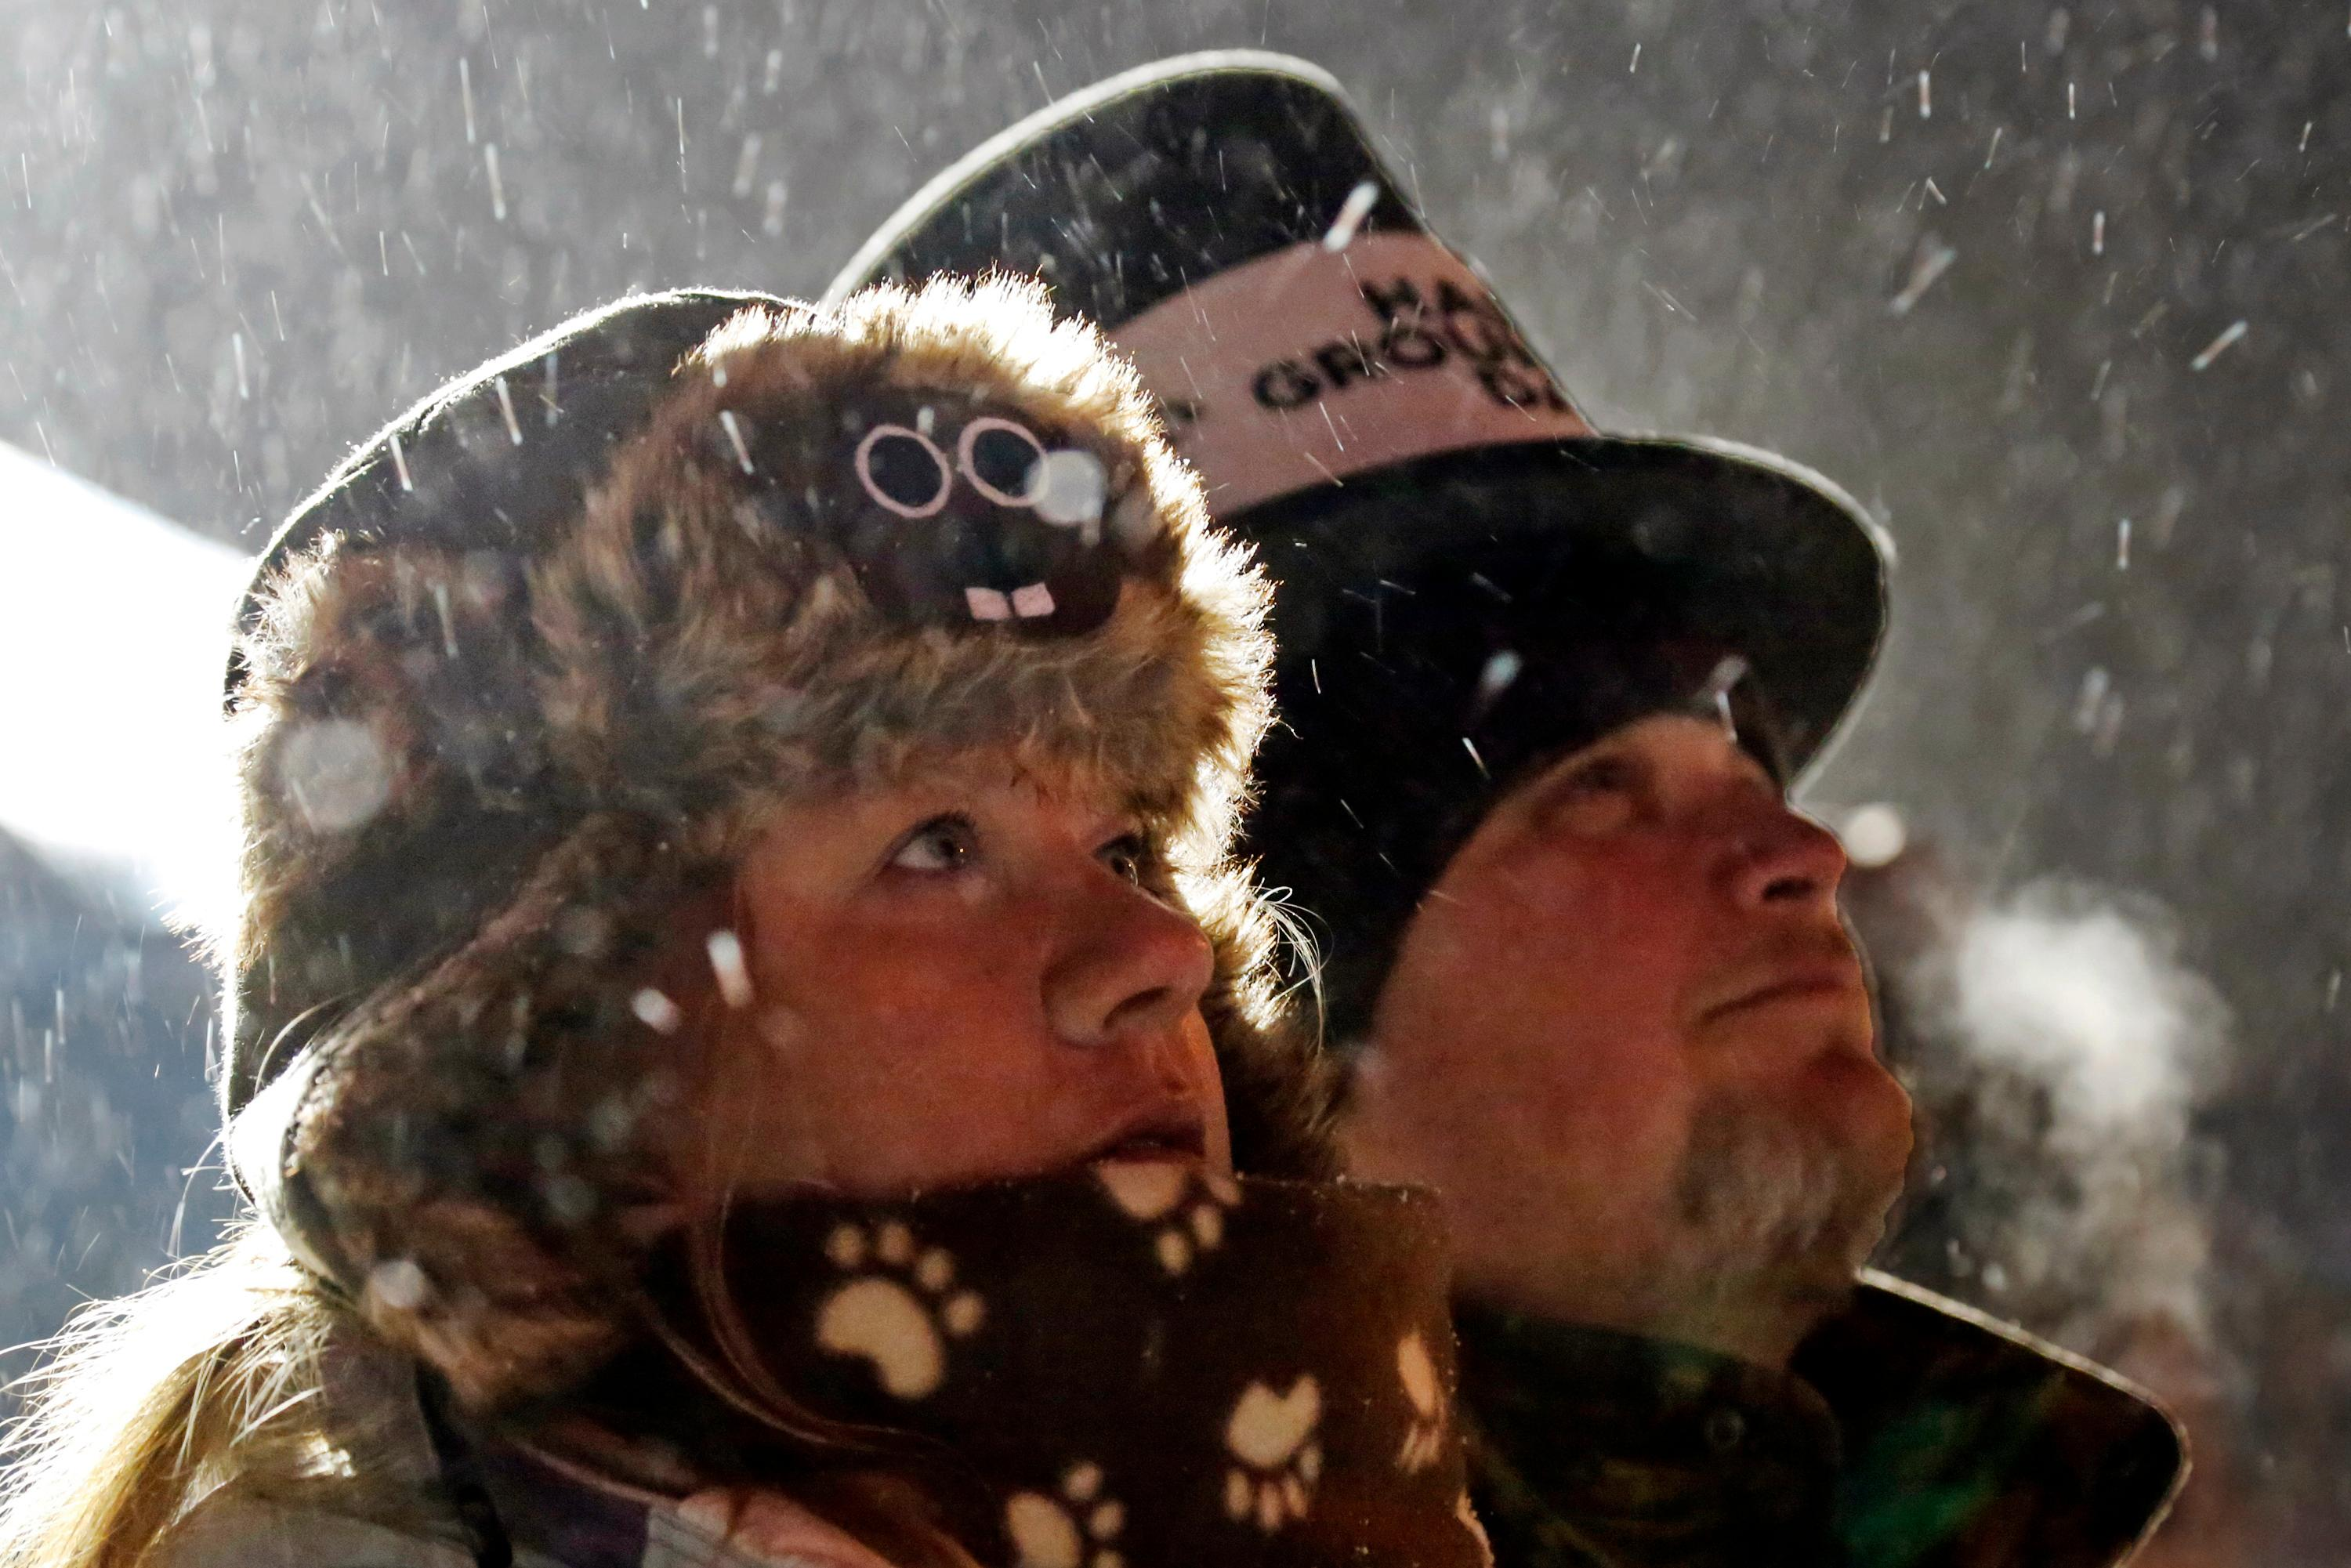 Jackie and Jimmy Wilson watch a fireworks display during the 132nd Groundhog Day on Gobbler's Knob in Punxsutawney, Pa. Friday, Feb. 2, 2018. (AP Photo/Gene J. Puskar)